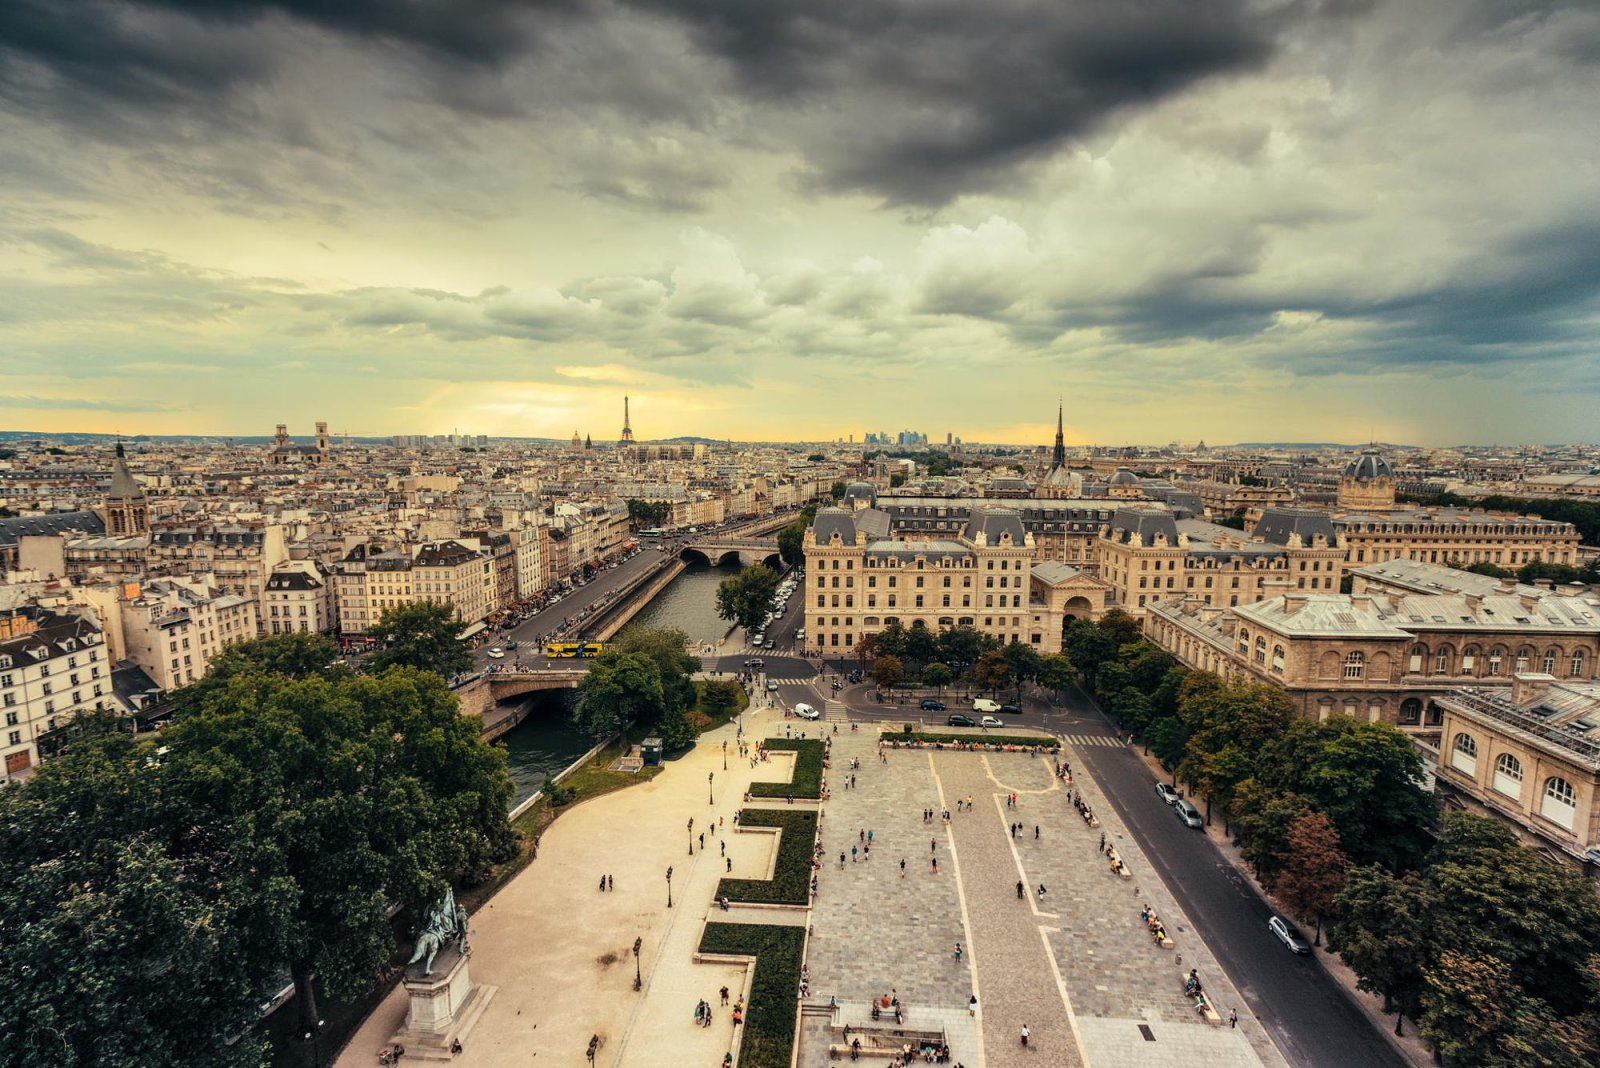 Paris - Eiffel Tower at Sunset - View from Notre Dame Cathedral